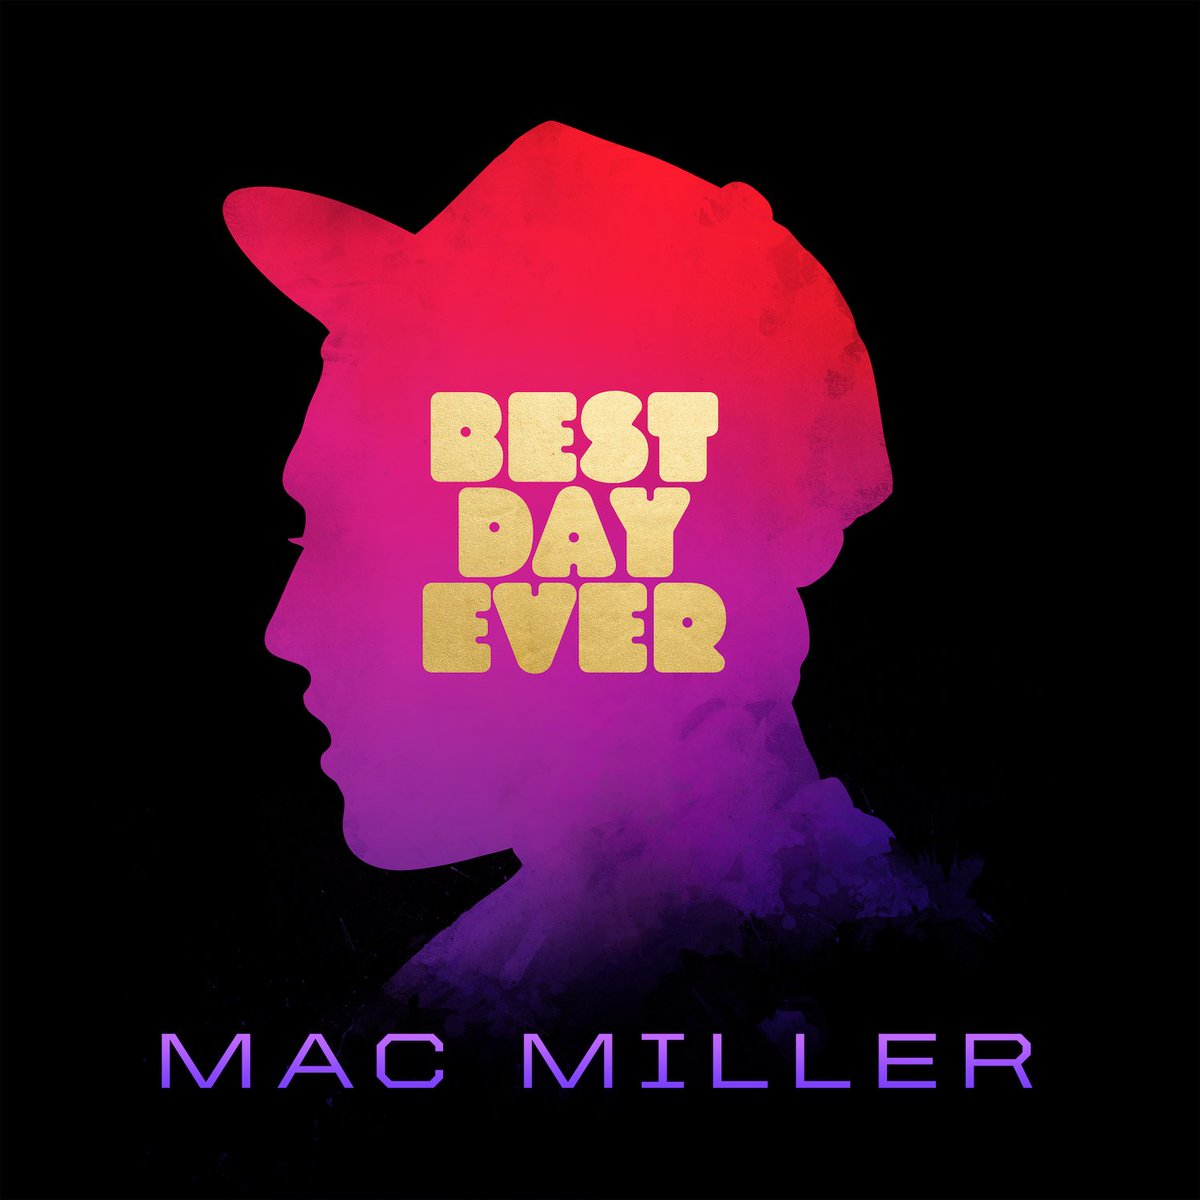 """""""@MacMiller's #BestDayEver to get commercial release for 5th Anniversary"""" - @theSTASHED https://t.co/EQVjMh5VcX https://t.co/eMdUlU2l25"""